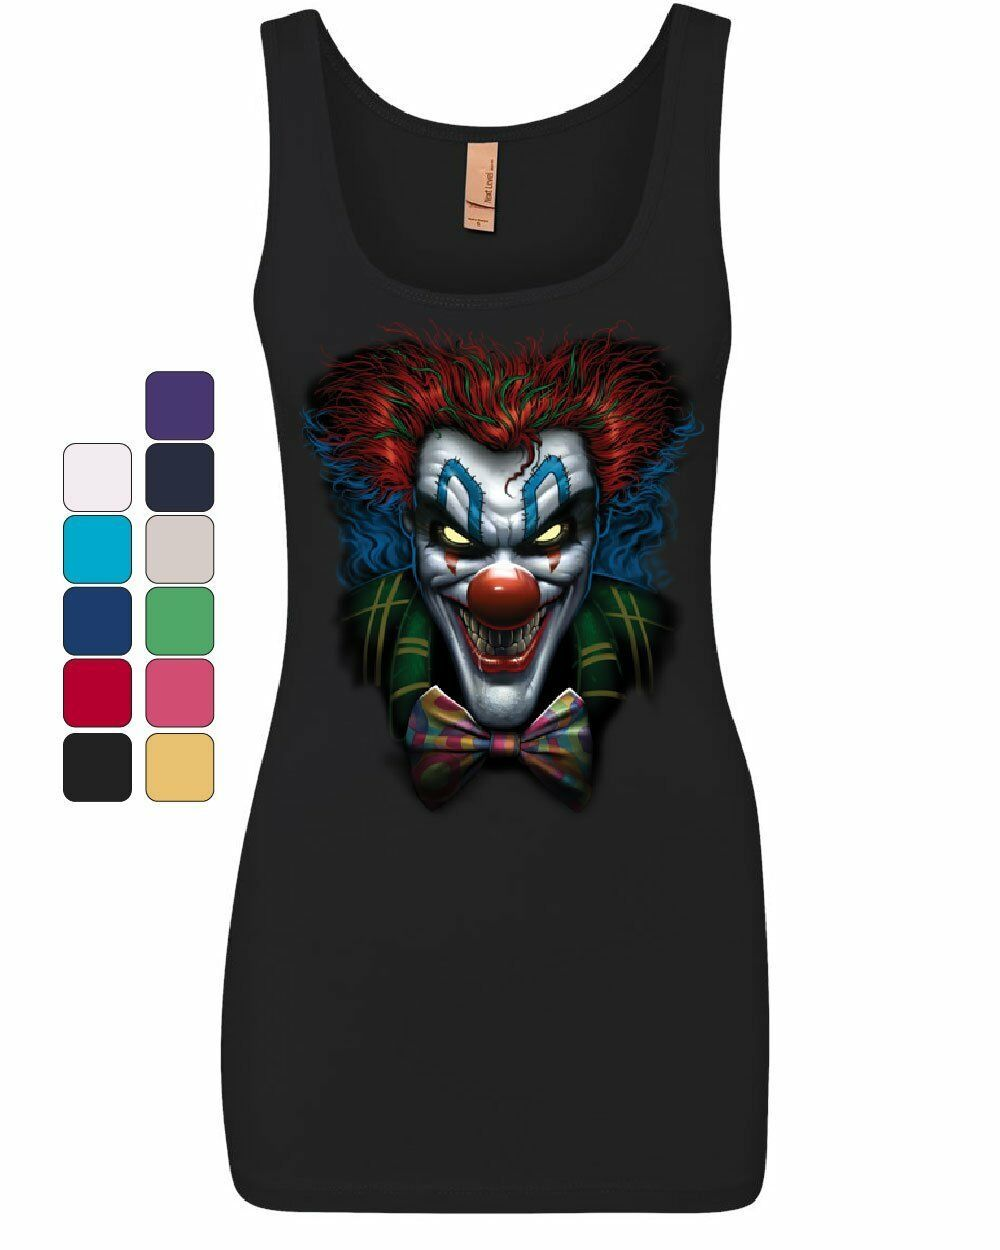 Primary image for Psycho Clown Women's Tank Top Nightmare Evil Creepy Scary Horror Fobia Top